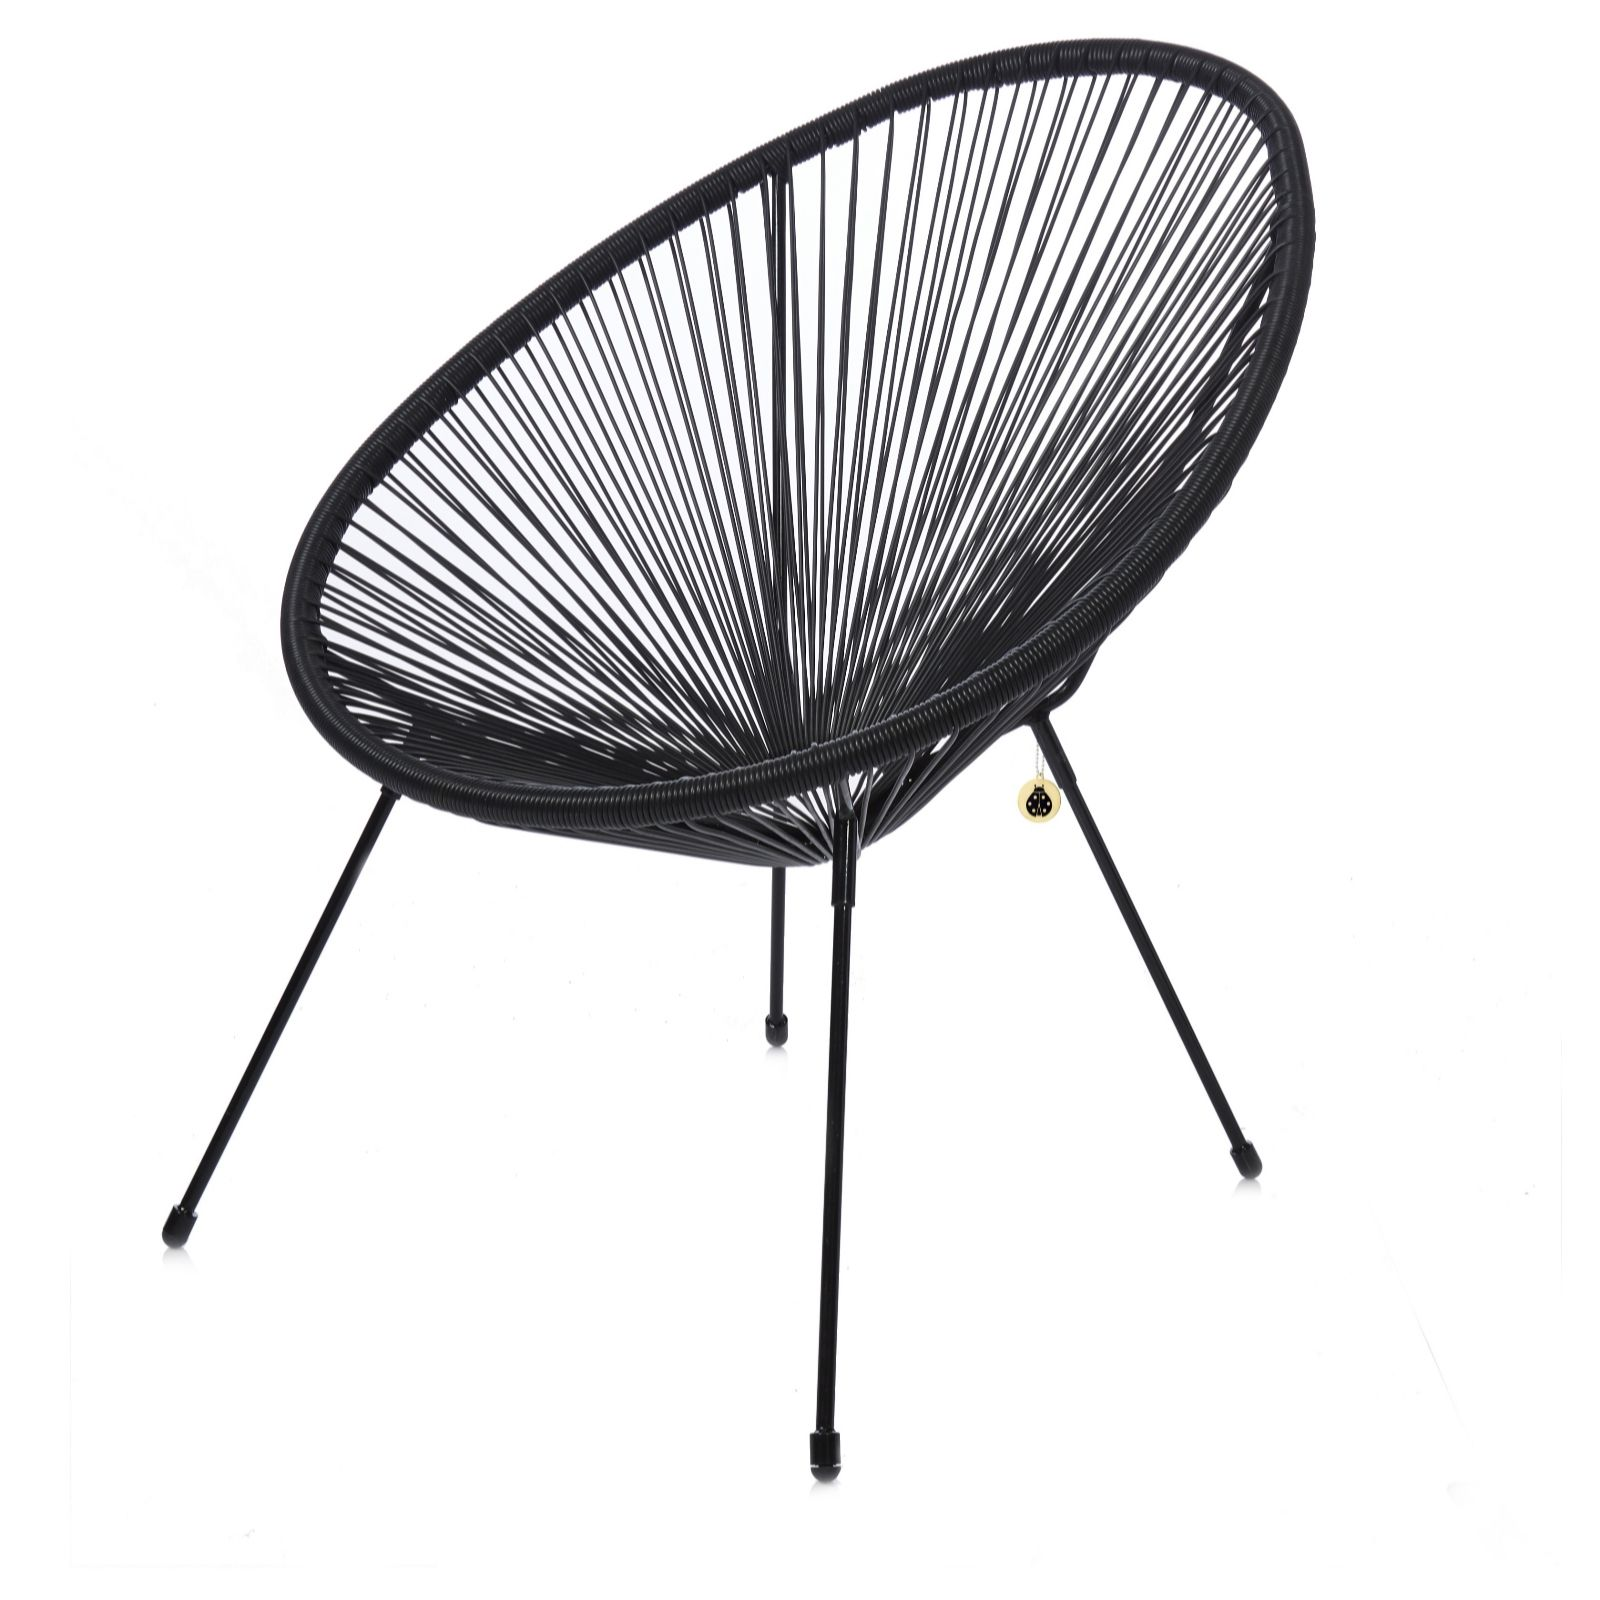 Superbe BundleBerry By Amanda Holden String Chair. Back To Video